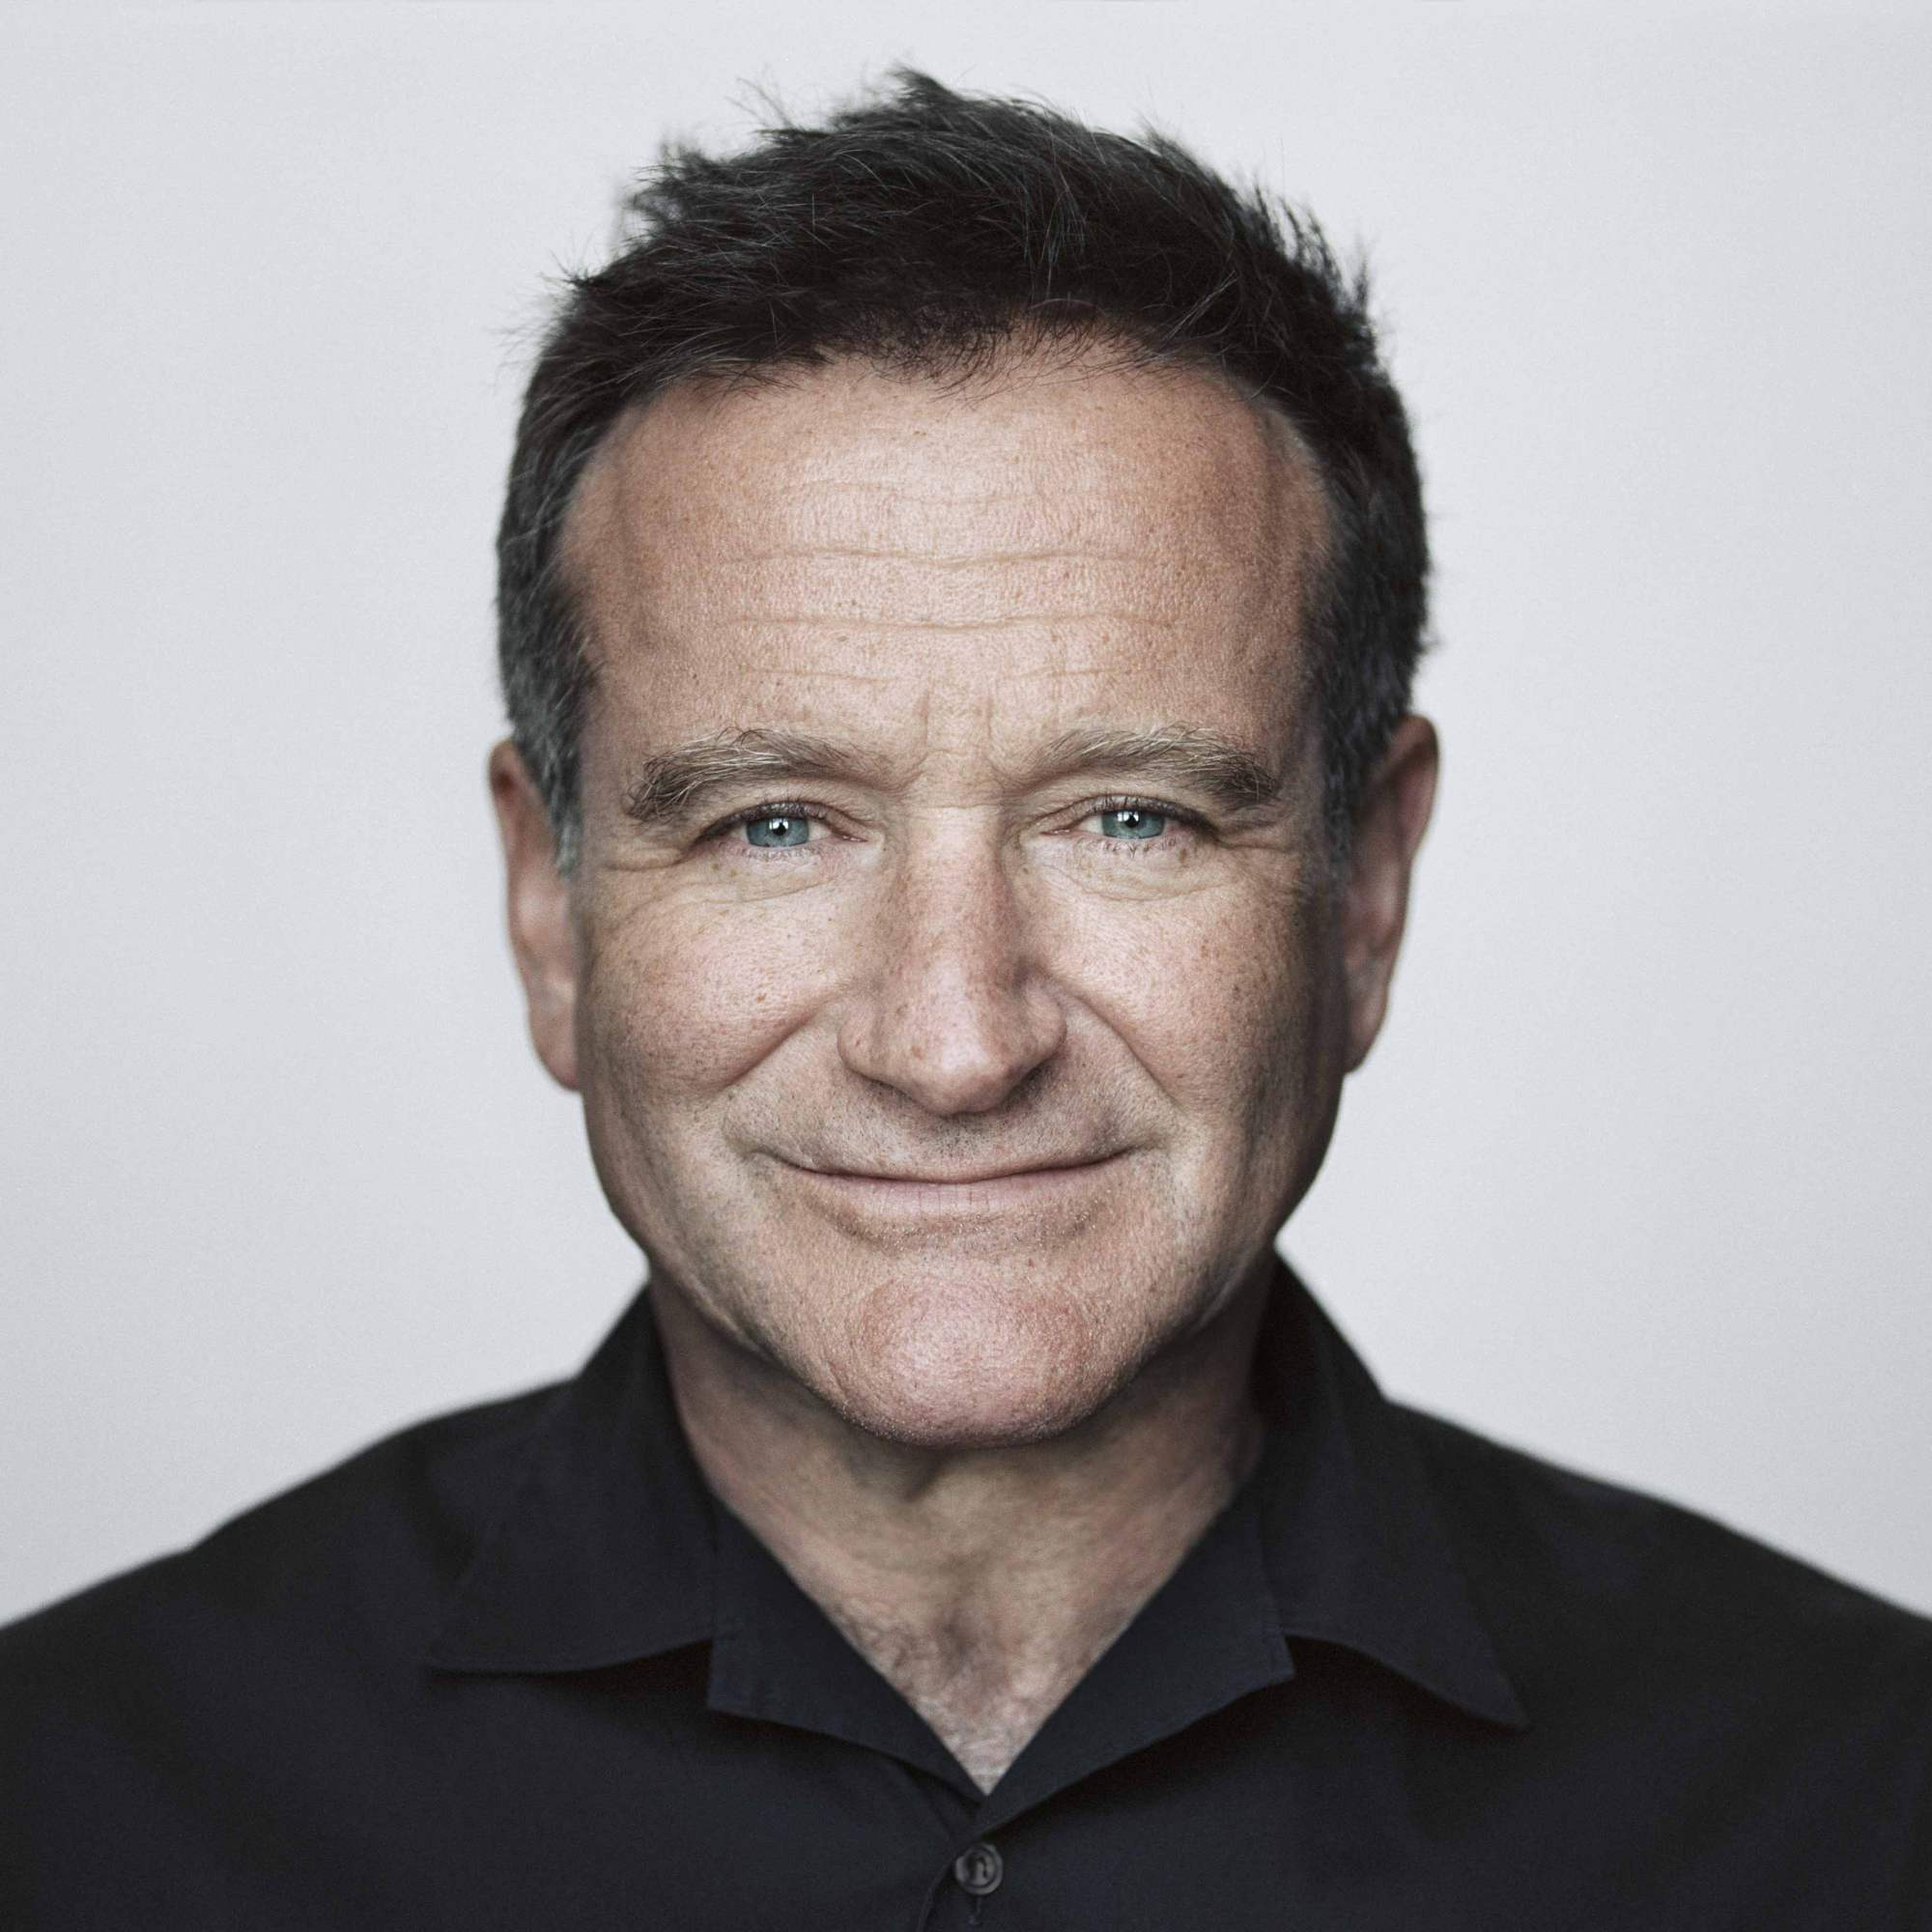 How tall is Robin Williams?